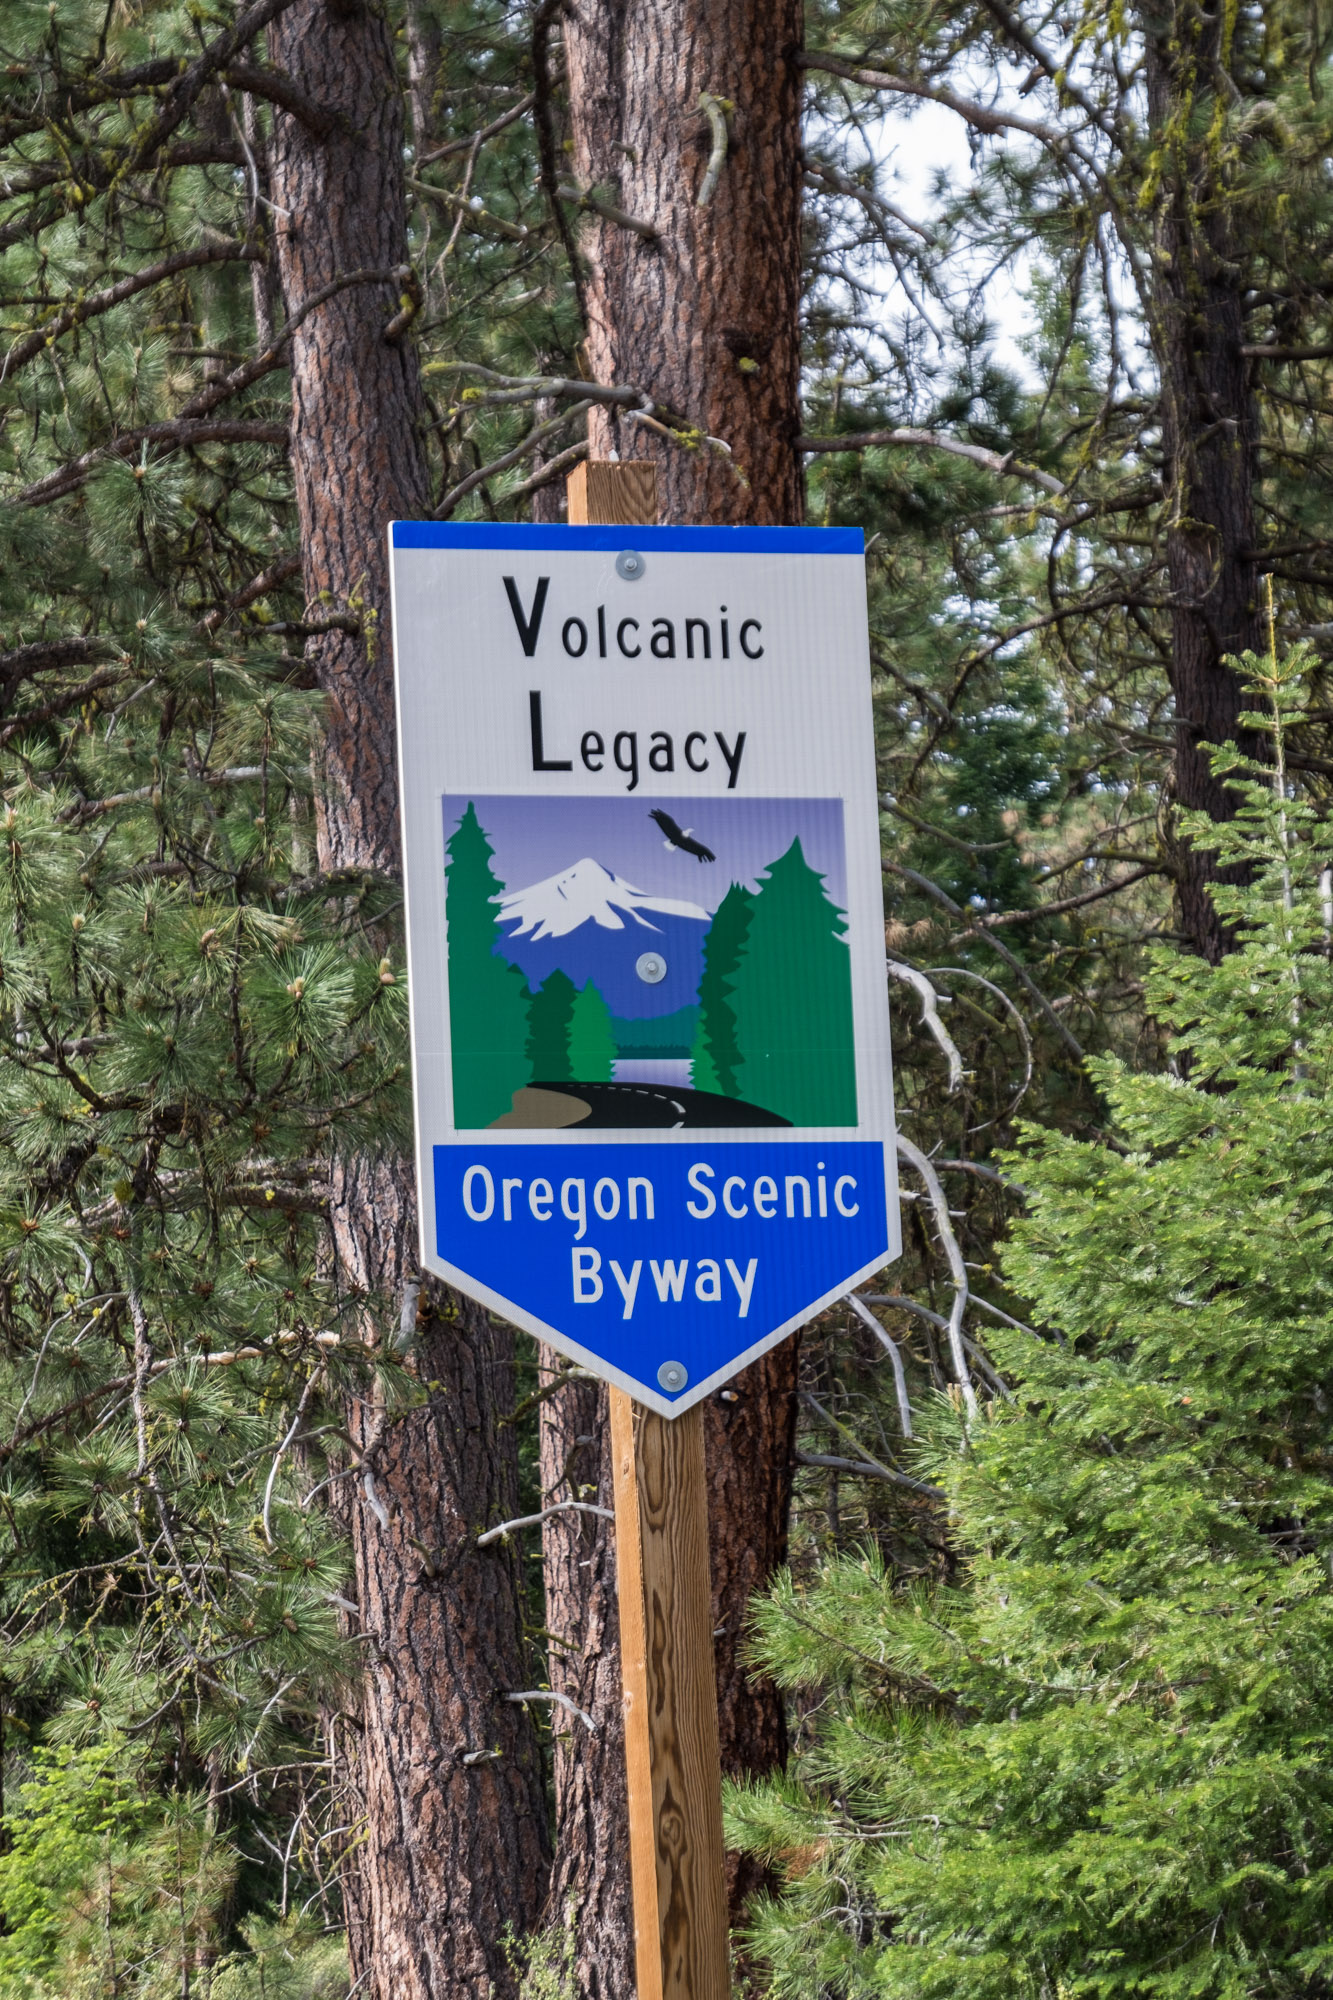 The entrance is along an Oregon Scenic Byway.